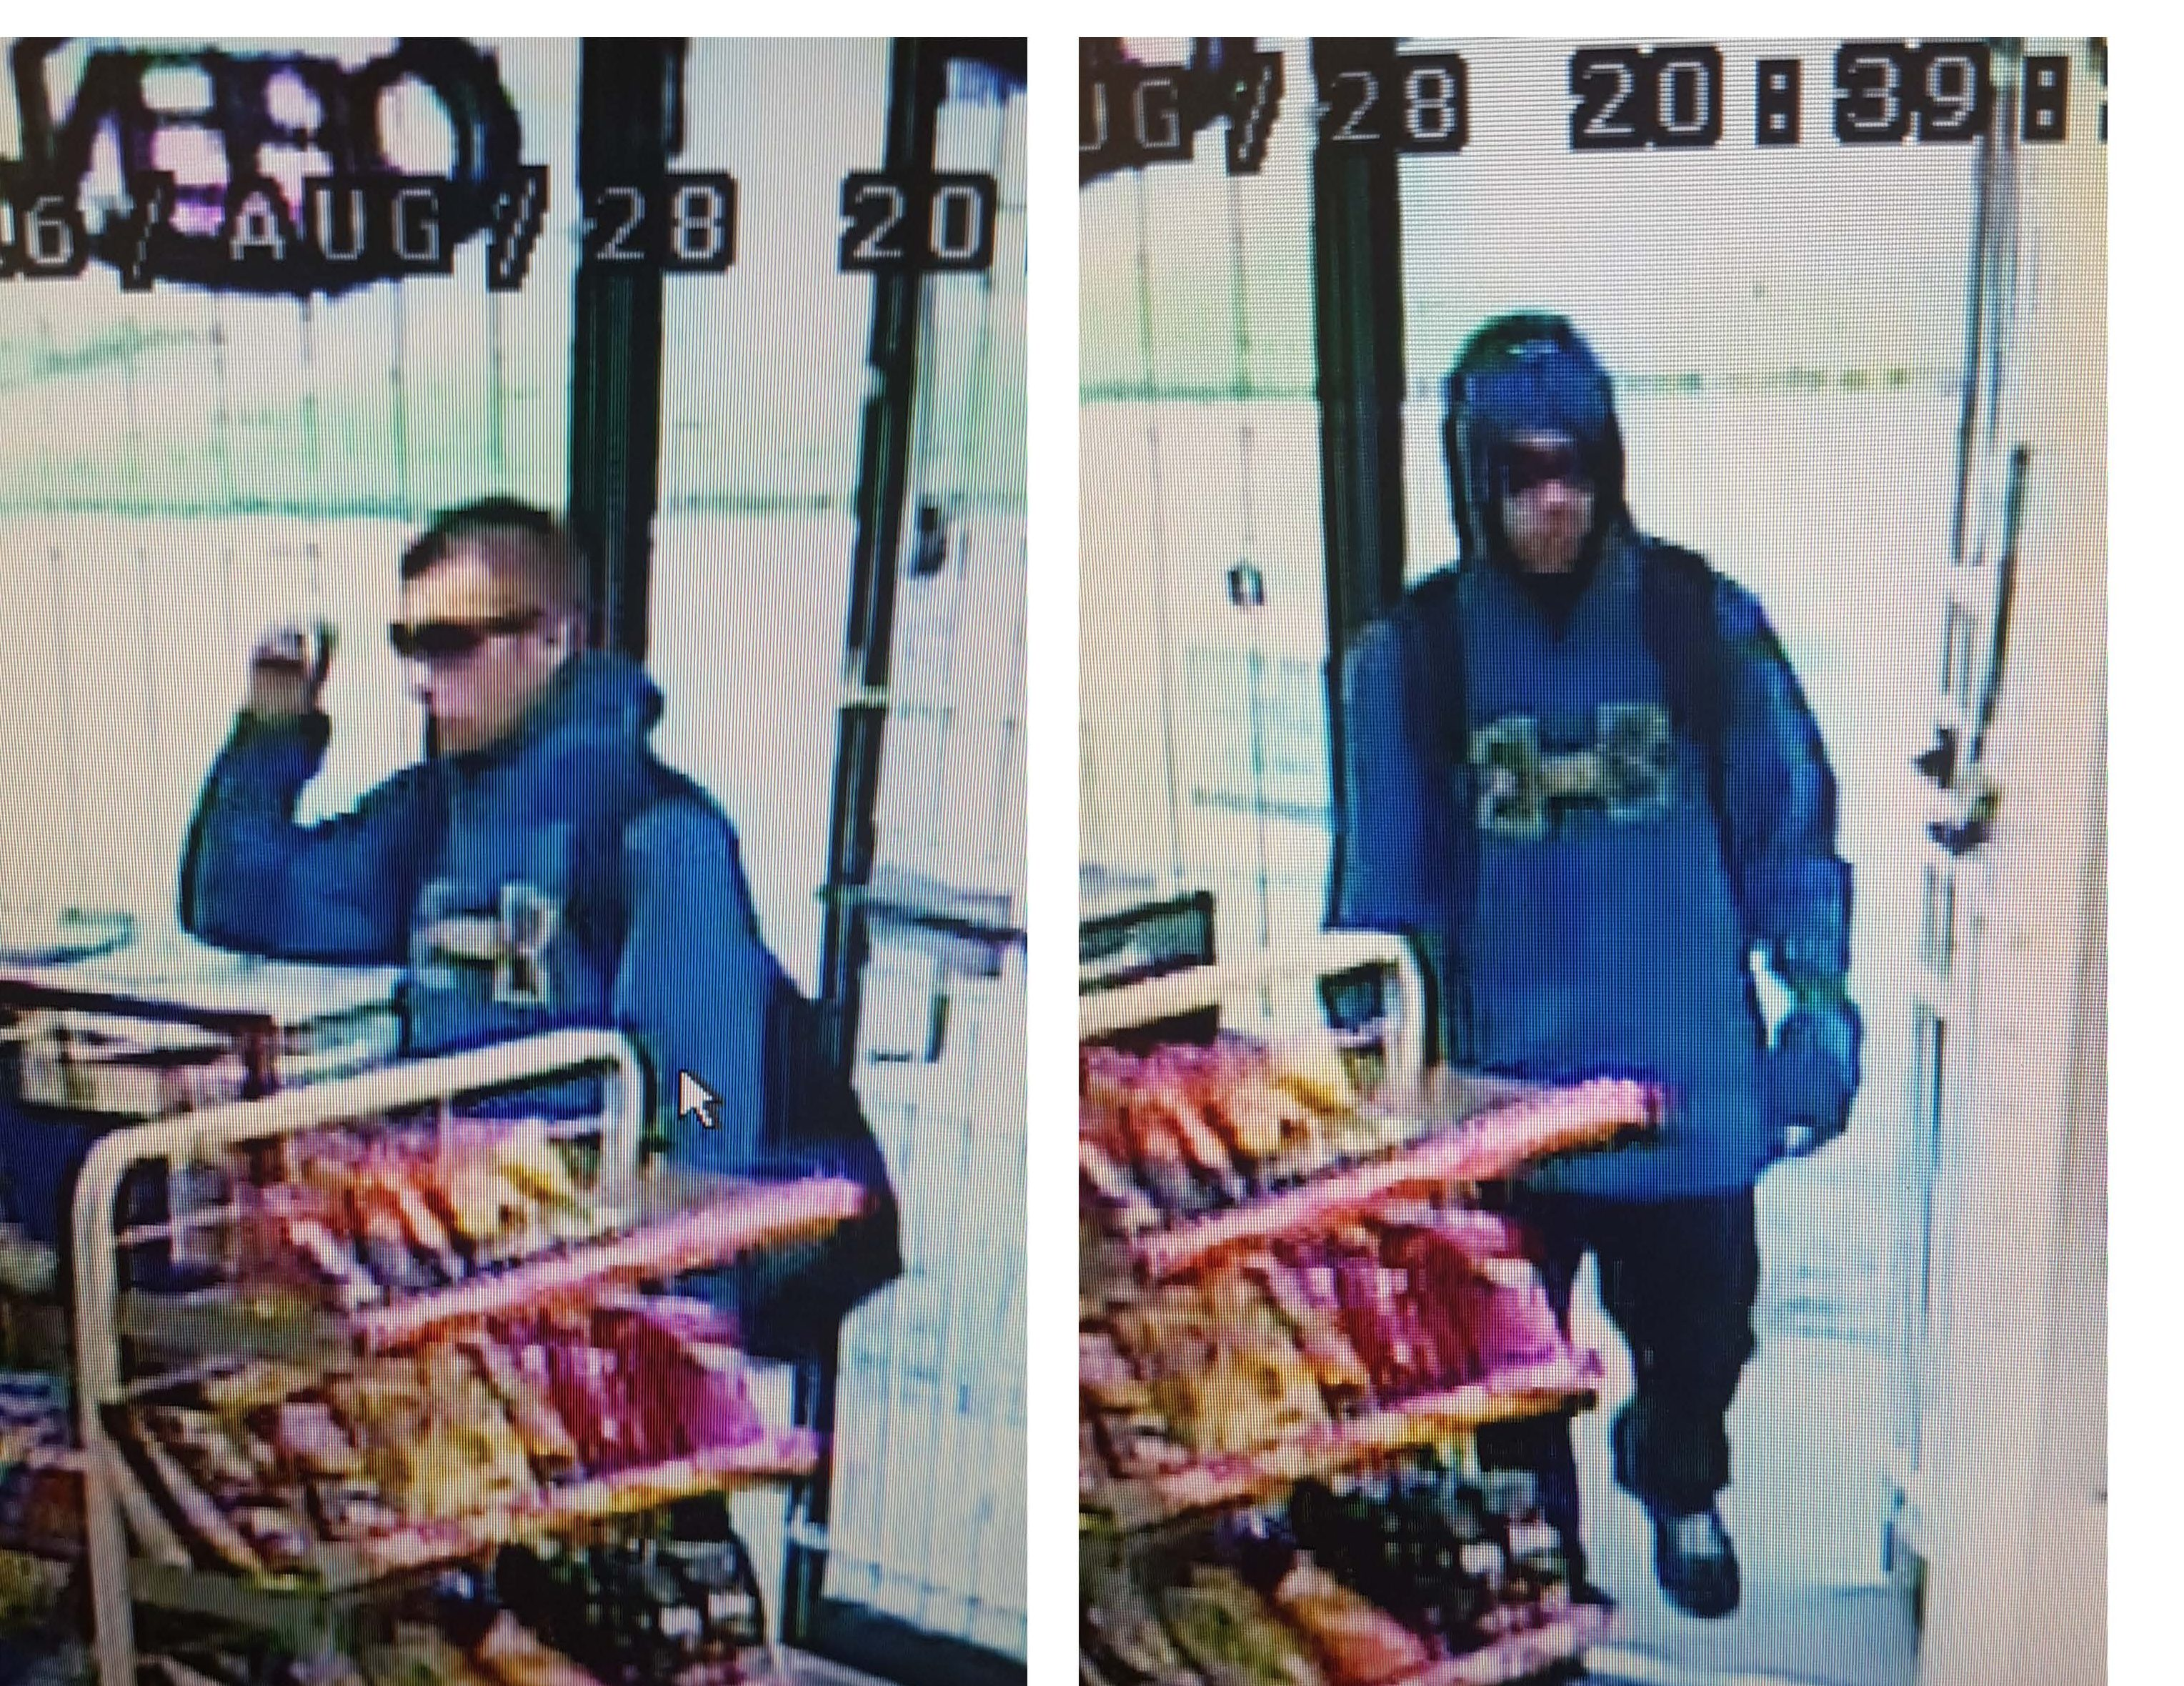 Armed Convenience Store Robbery